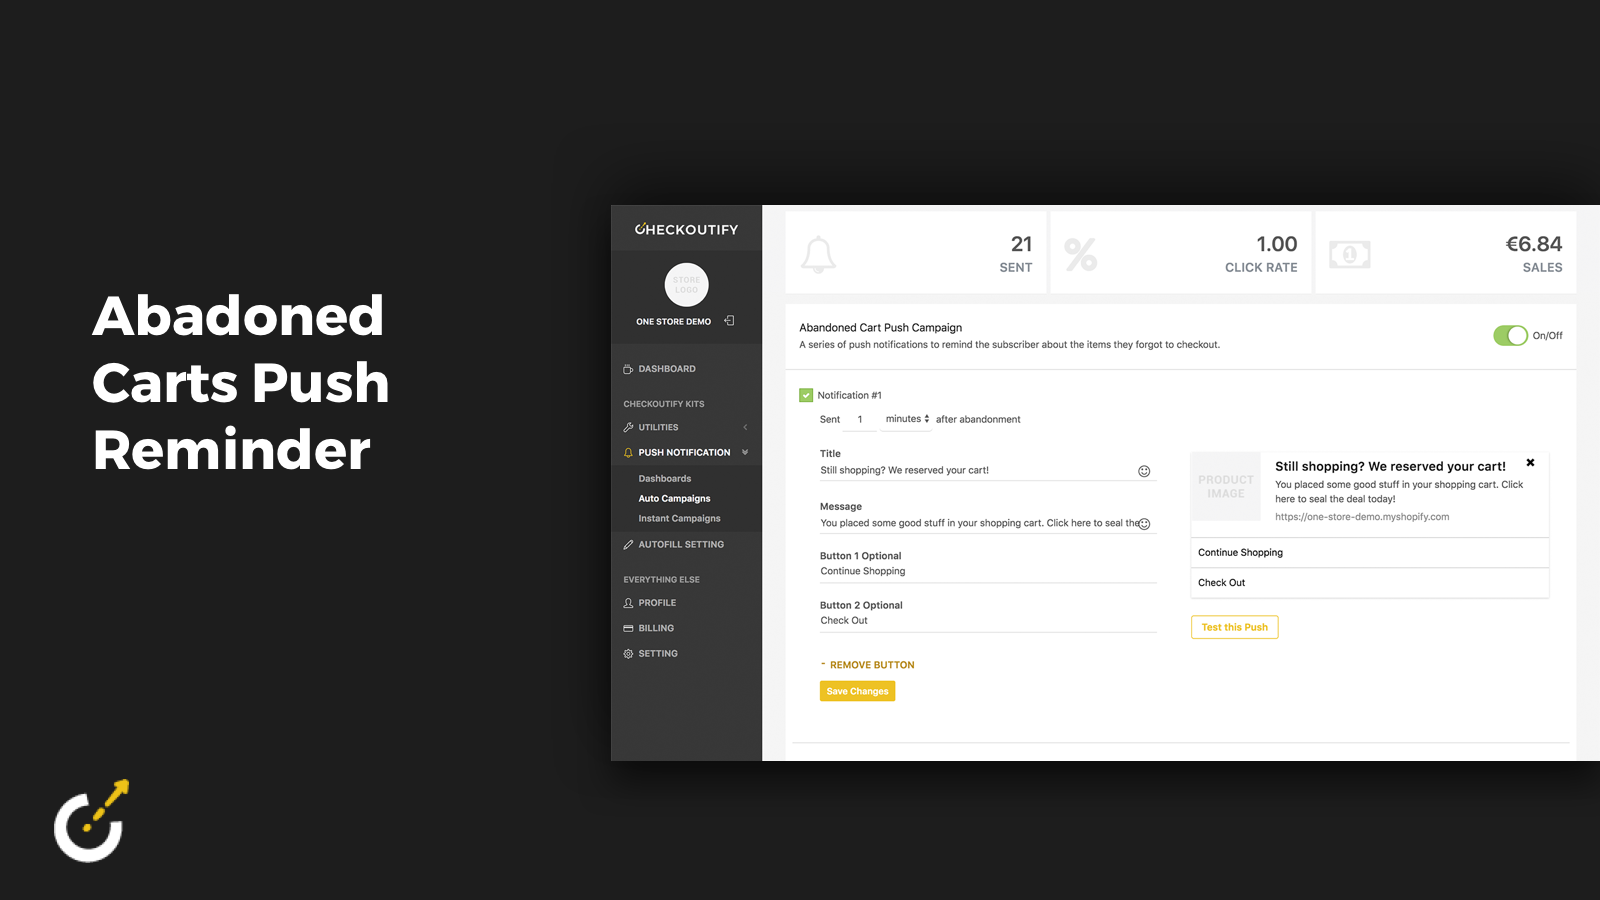 Automated Checkoutify Push Campaigns